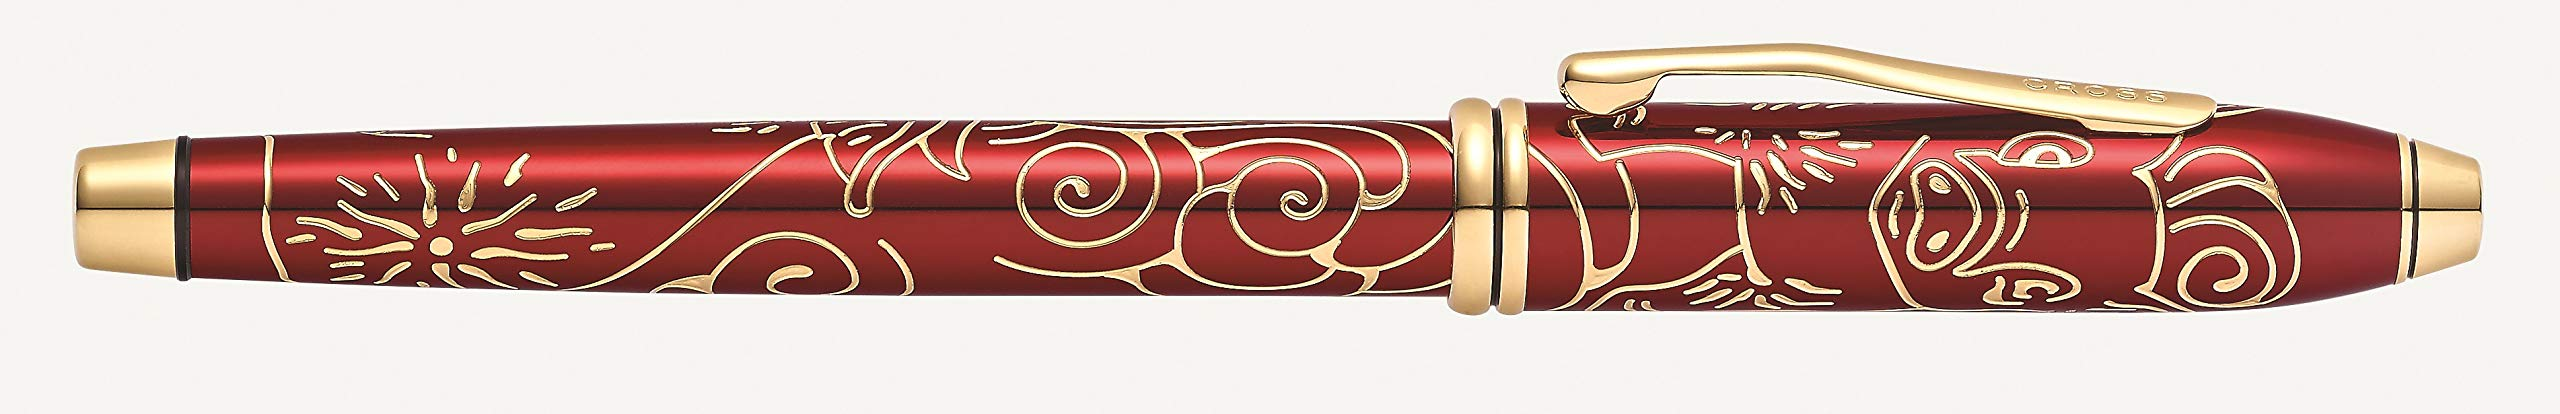 Cross 2019 Year Of The Pig Special-Edition Rollerball Pen (AT0045-55) by Cross (Image #3)